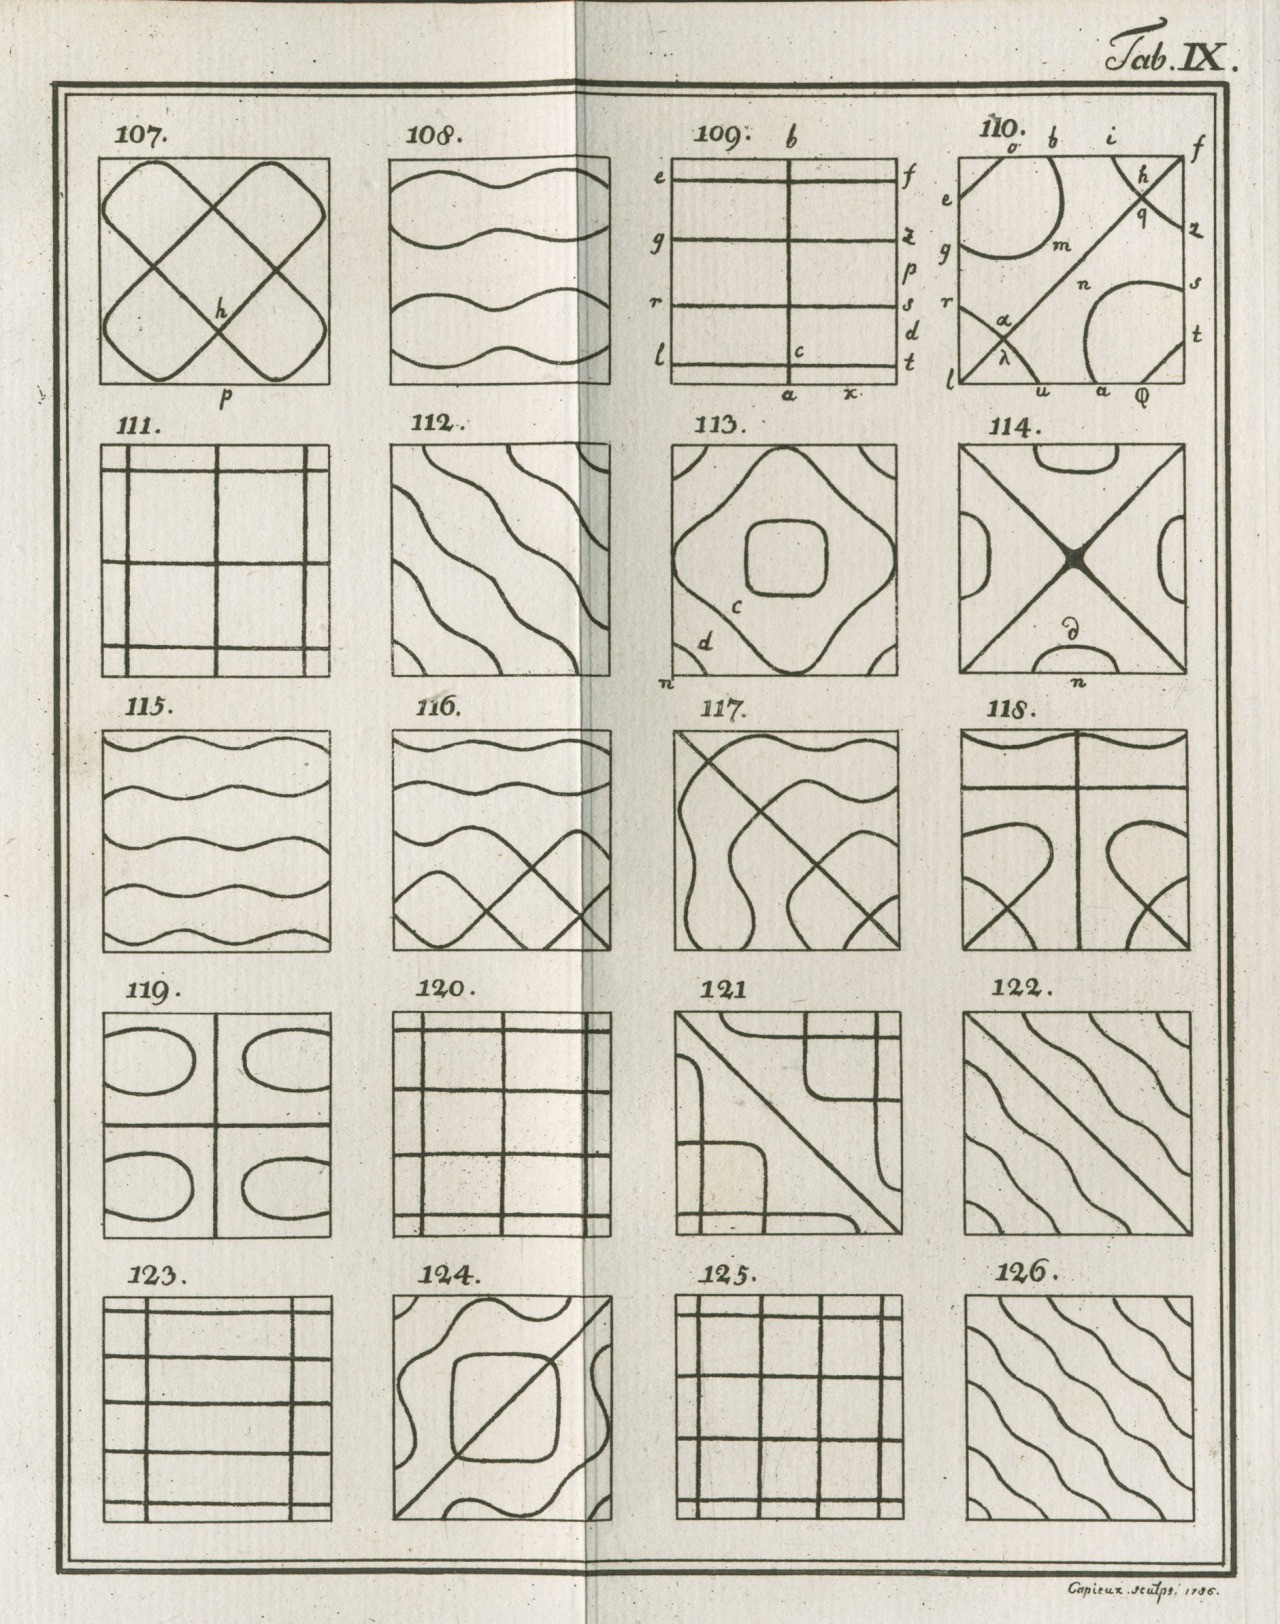 Visualizations of vibration patterns from 1787 by Ernst Chladni